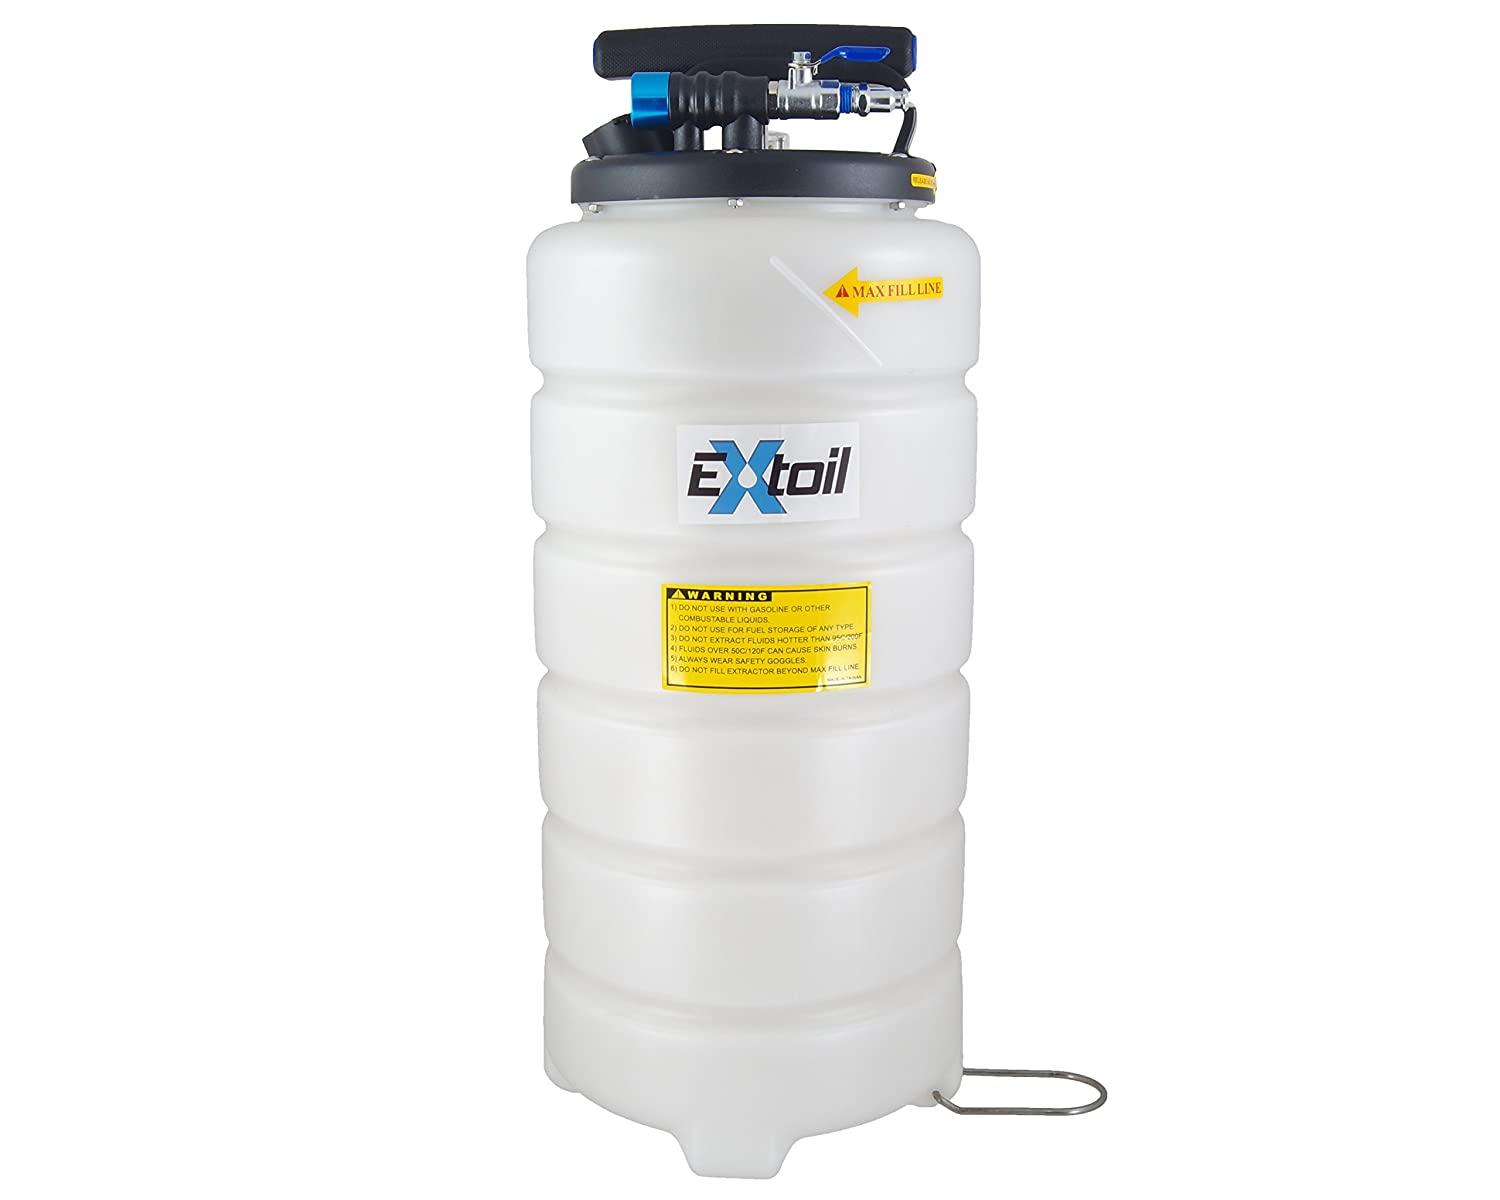 EXtoil 15 Liter Professional Pneumatic Oil Extractor EXT-15-PRO